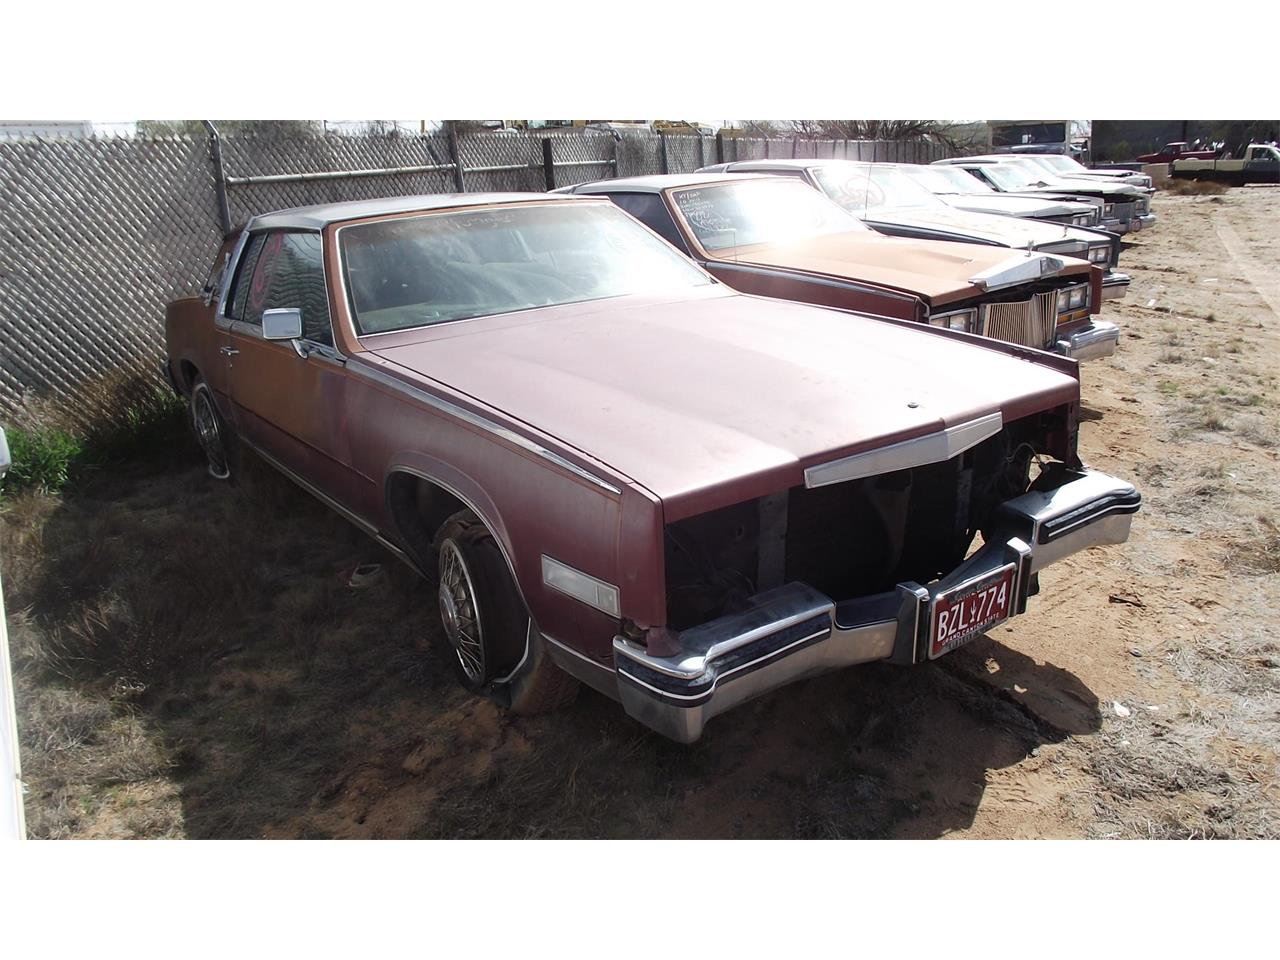 1984 Cadillac Eldorado (CC-1360845) for sale in Phoenix, Arizona